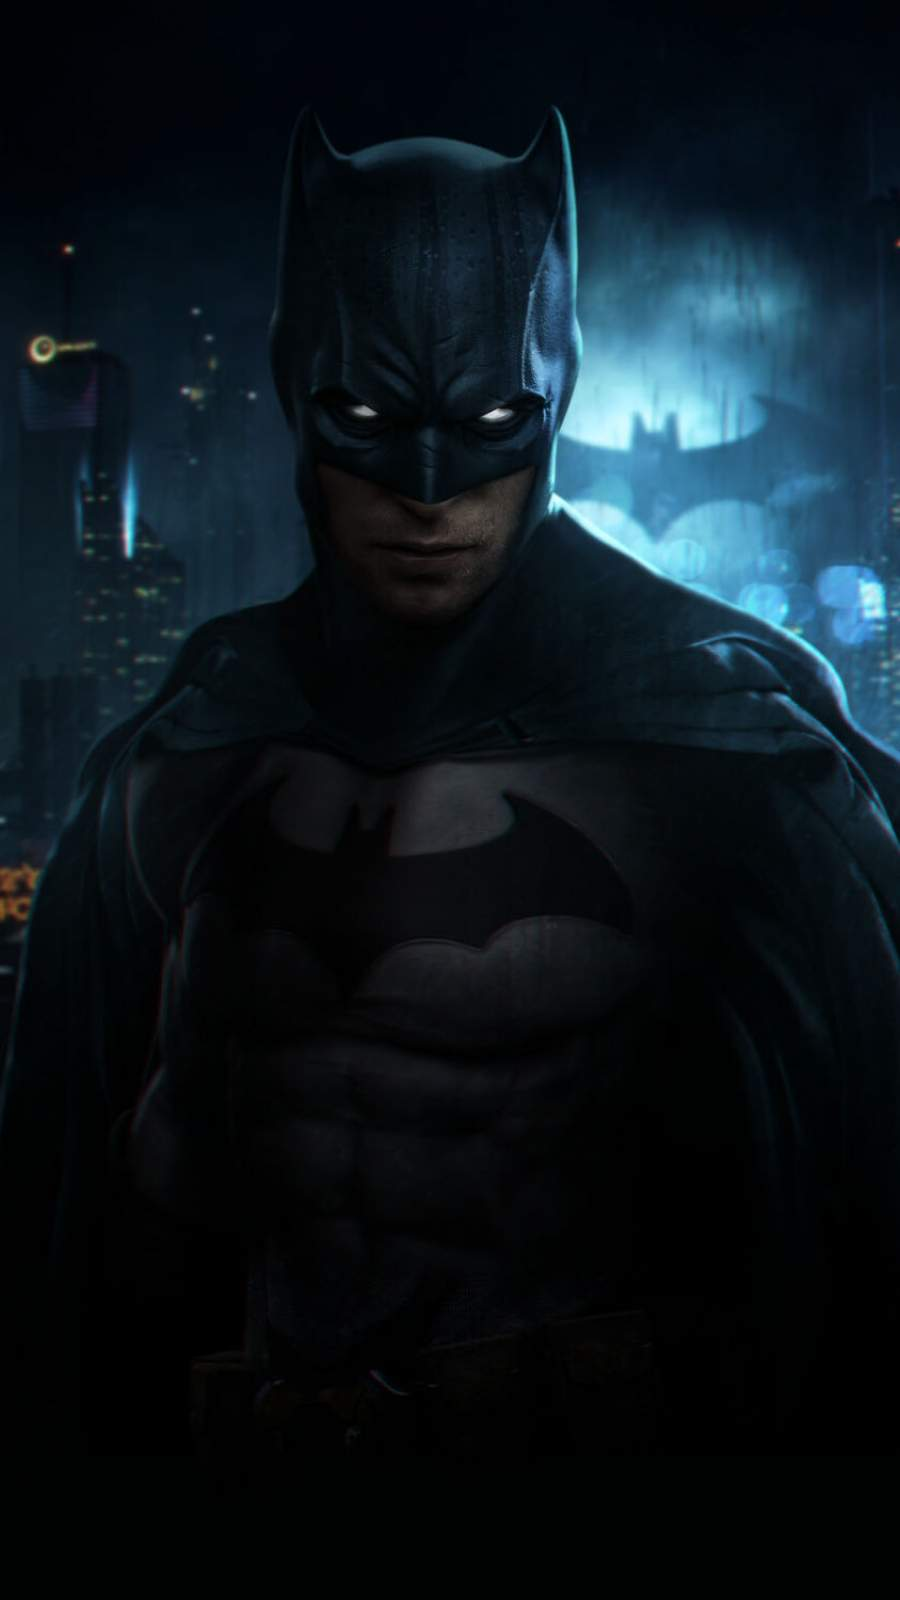 The Batman Robert Pattinson iPhone Wallpaper